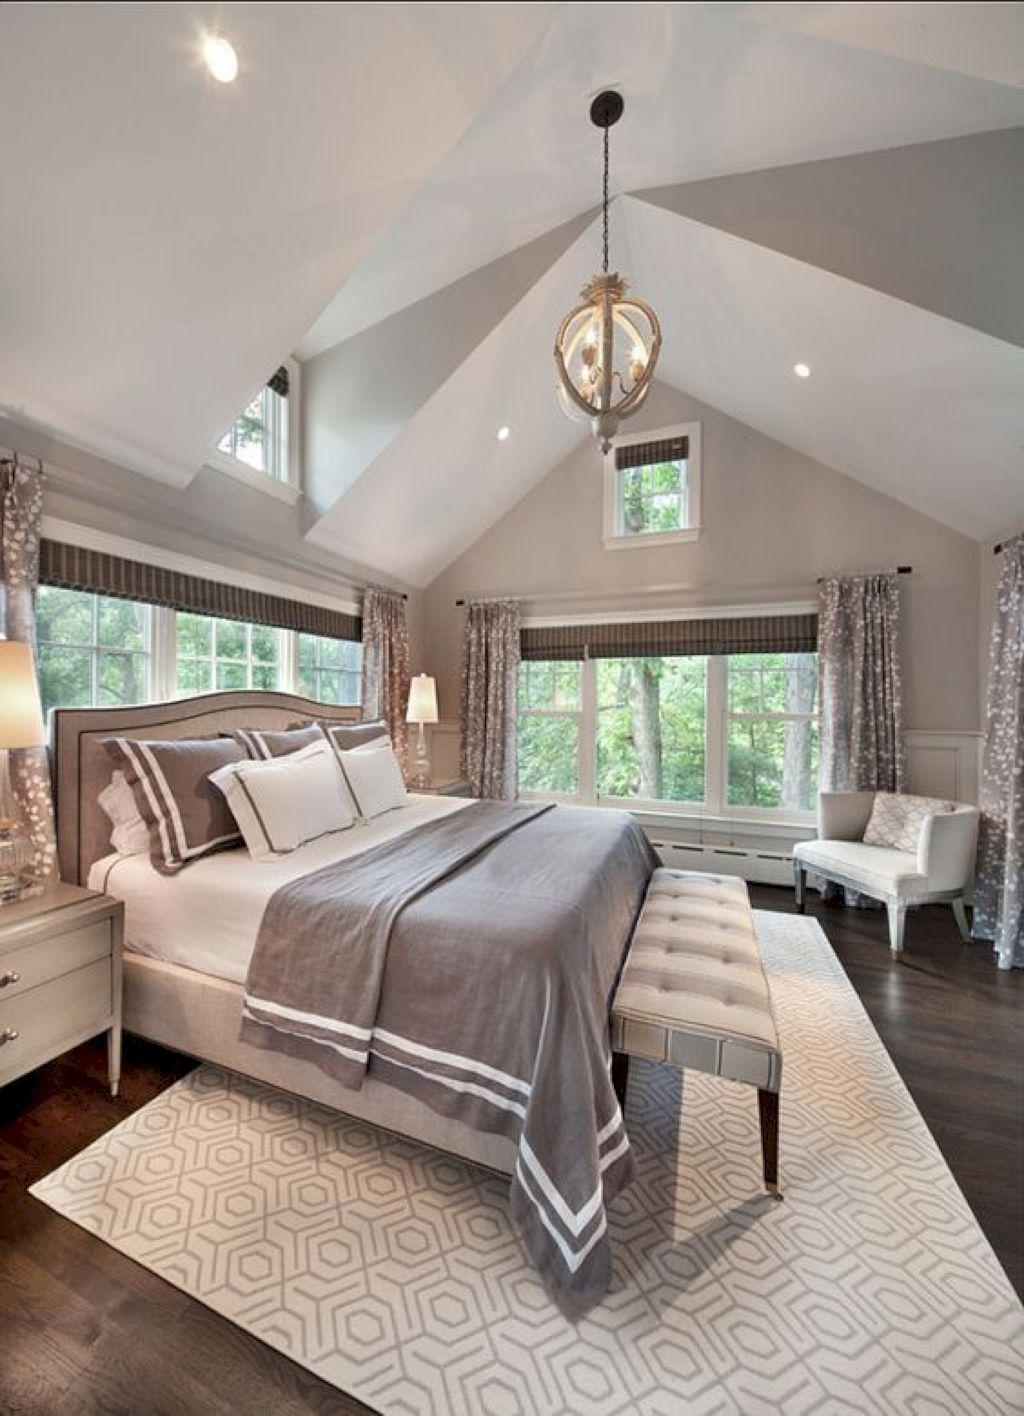 Cool 50 Master Bedroom Remodel Ideas On